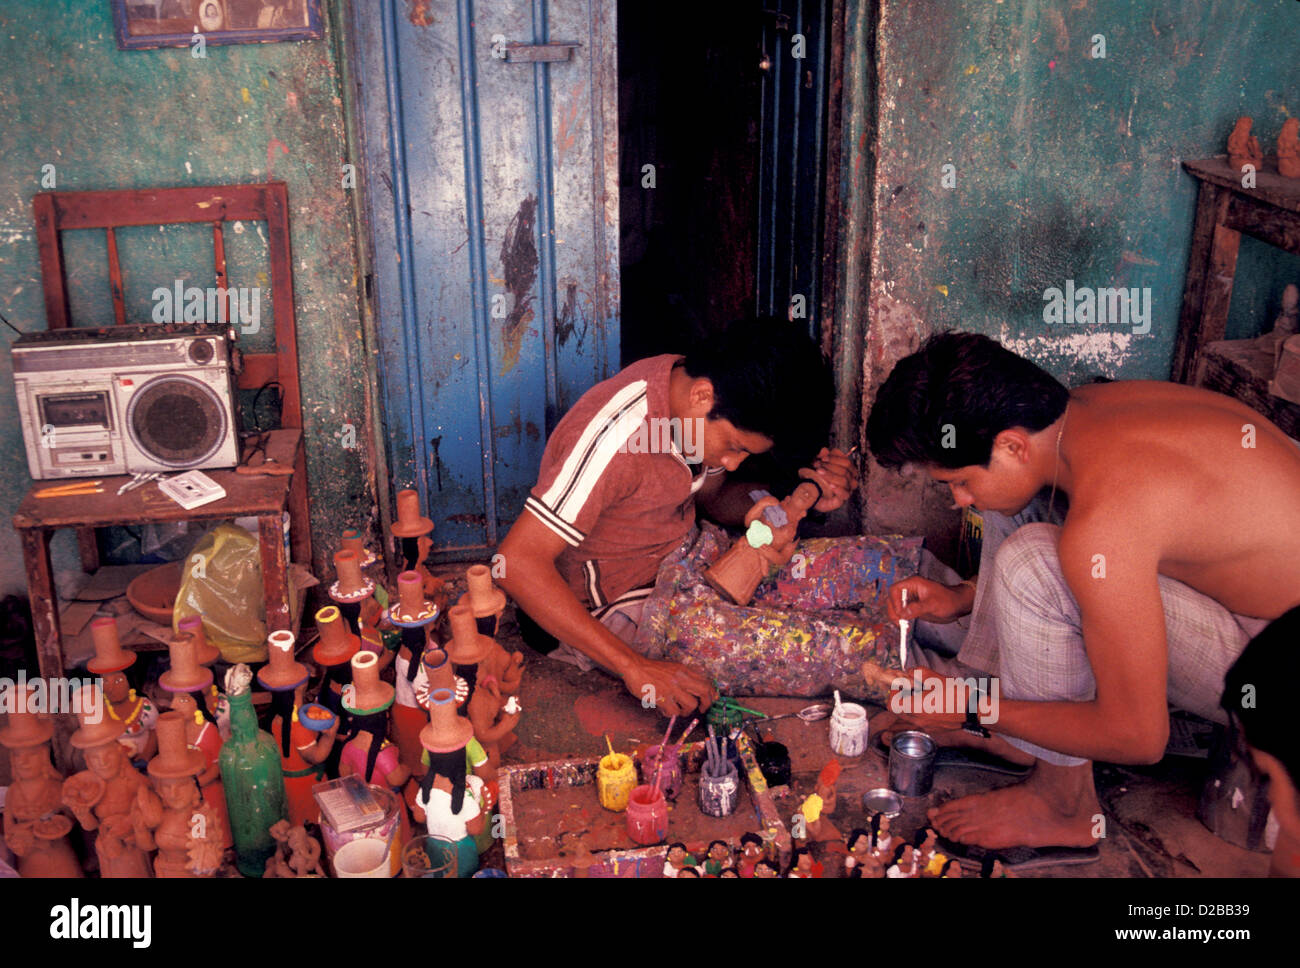 Costa Rica, 2 Men Painting Figurines Outside In Front Of Doorway Listening To Radio - Stock Image